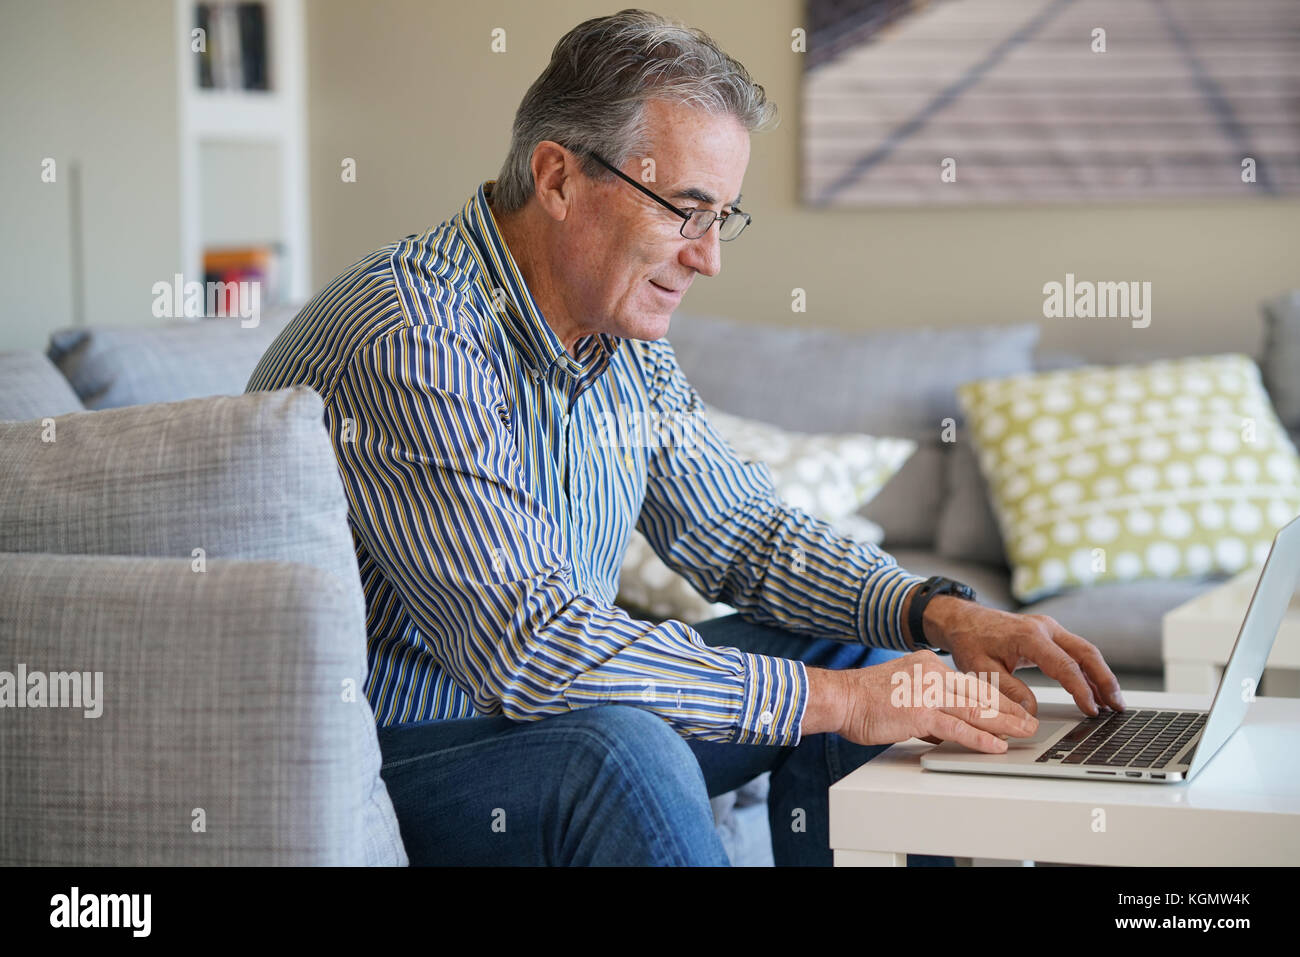 Senior man in living-room using laptop computer - Stock Image